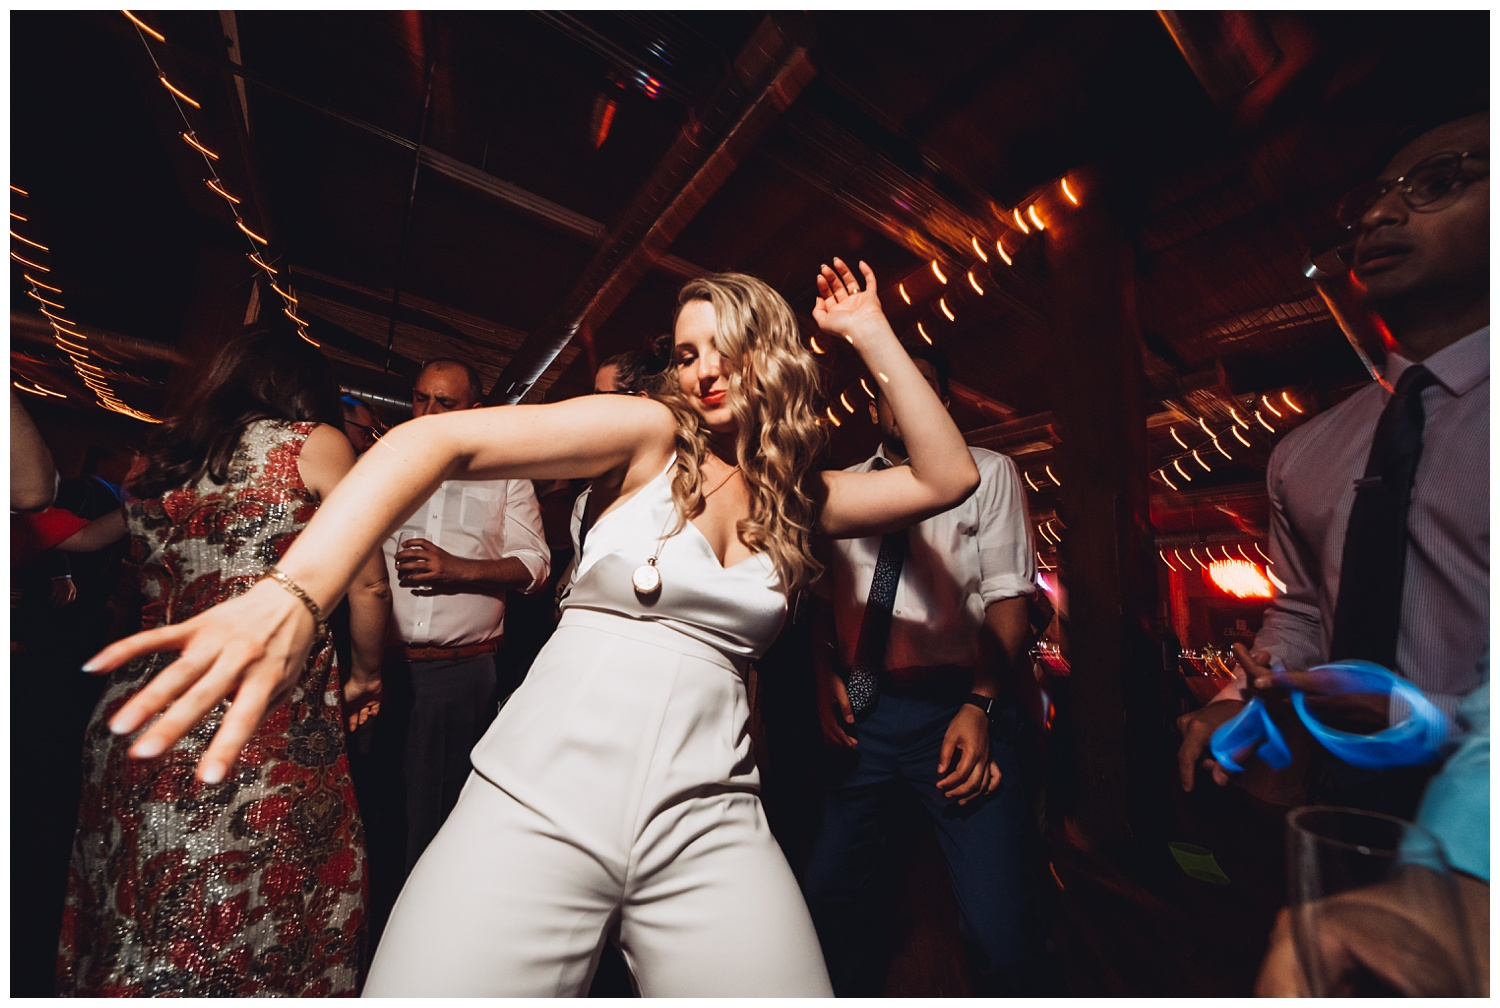 Lacuna Lofts Chicago Wedding Photography - The Adamkovi, Epic Dance Party